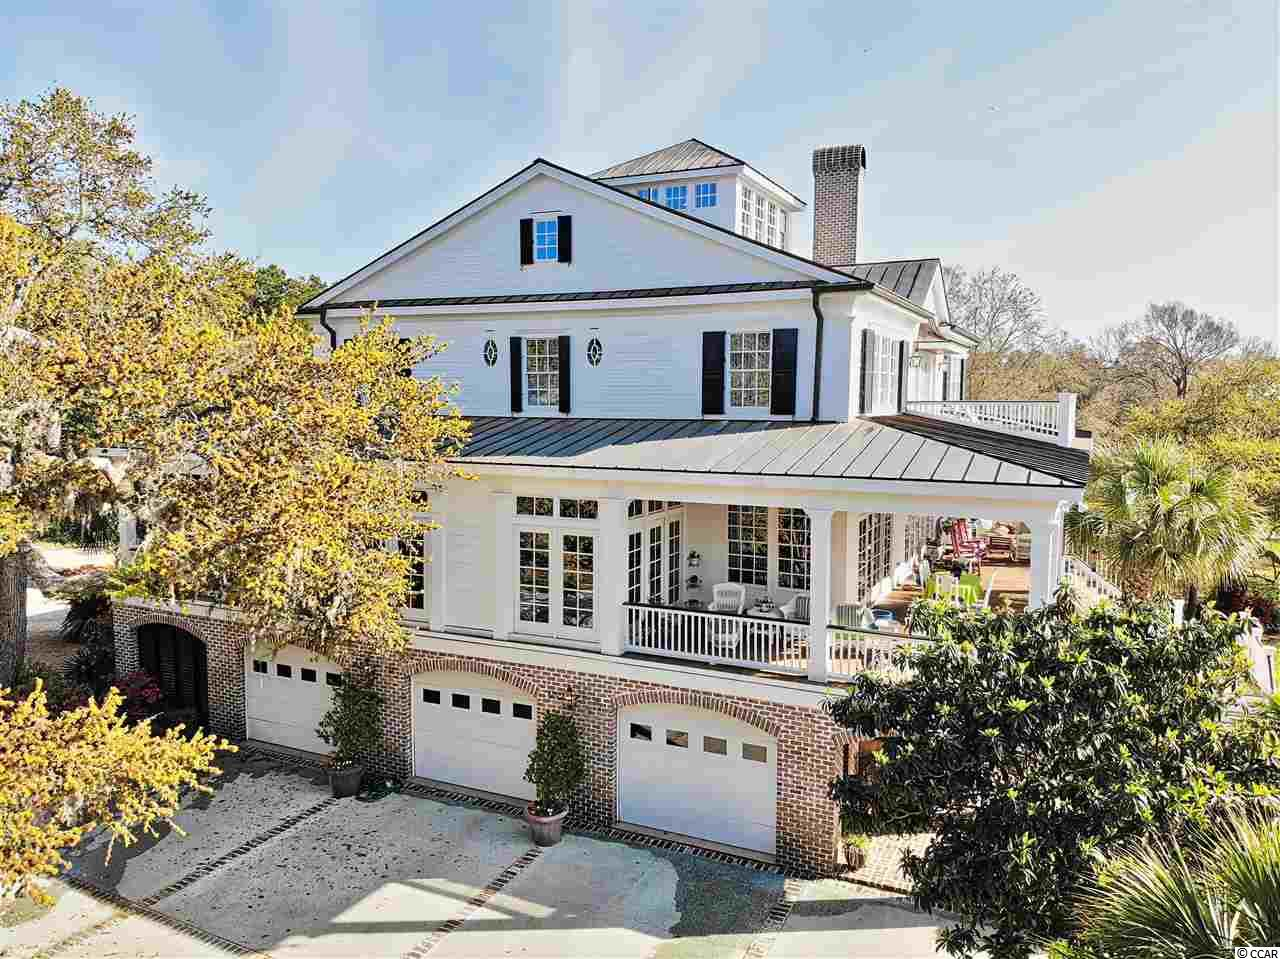 A Jewel of the Lowcountry! This Absolutely Stunning Property is located on a Double Waterfront Lot Overlooking the Marsh and Ocean in Murrells Inlet. Spacious 5 bedroom, 4.5 bath, 2 kitchen, 3 story home plus a cupola that offers views all the way to the ocean and up the coastline. One of the few properties in the area with Deep Water Access even at low tide, this Plantation style home custom built in 2003 boasts extensive upgrades and is on an historical property. Surrounded by gorgeous landscaping and historic Live Oaks, it has an Oversized Heated and Cooled 4 Car Garage with Expansive Work and Storage area, Private Boat Ramp, Dock, Floating Dock, and Boat Lift. Features 12 foot wide Wraparound Porches, reclaimed 250 year old heart pine flooring throughout, granite countertops, 2 Upgraded Chef's Kitchens & elevator. 10 foot ceilings, custom hand carved woodwork, mantles, cabinetry and furniture throughout. Beam and coffered ceilings, gas and woodburning fireplaces. Downstairs den and porticos made from hand hewn cypress and Charleston brick, featuring cypress walls, custom cypress cabinetry and stainless steel appliances with commercial grade range. Structural upgrades include galvanized copper roof, reinforced solid poured concrete and steel block walls on the ground floor, laminated beam structure flooring system, retractable stainless steel hurricane shutters and all stainless steel nails throughout house. Features a fantastic layout with tons of Natural Light and Extensive Storage Area.